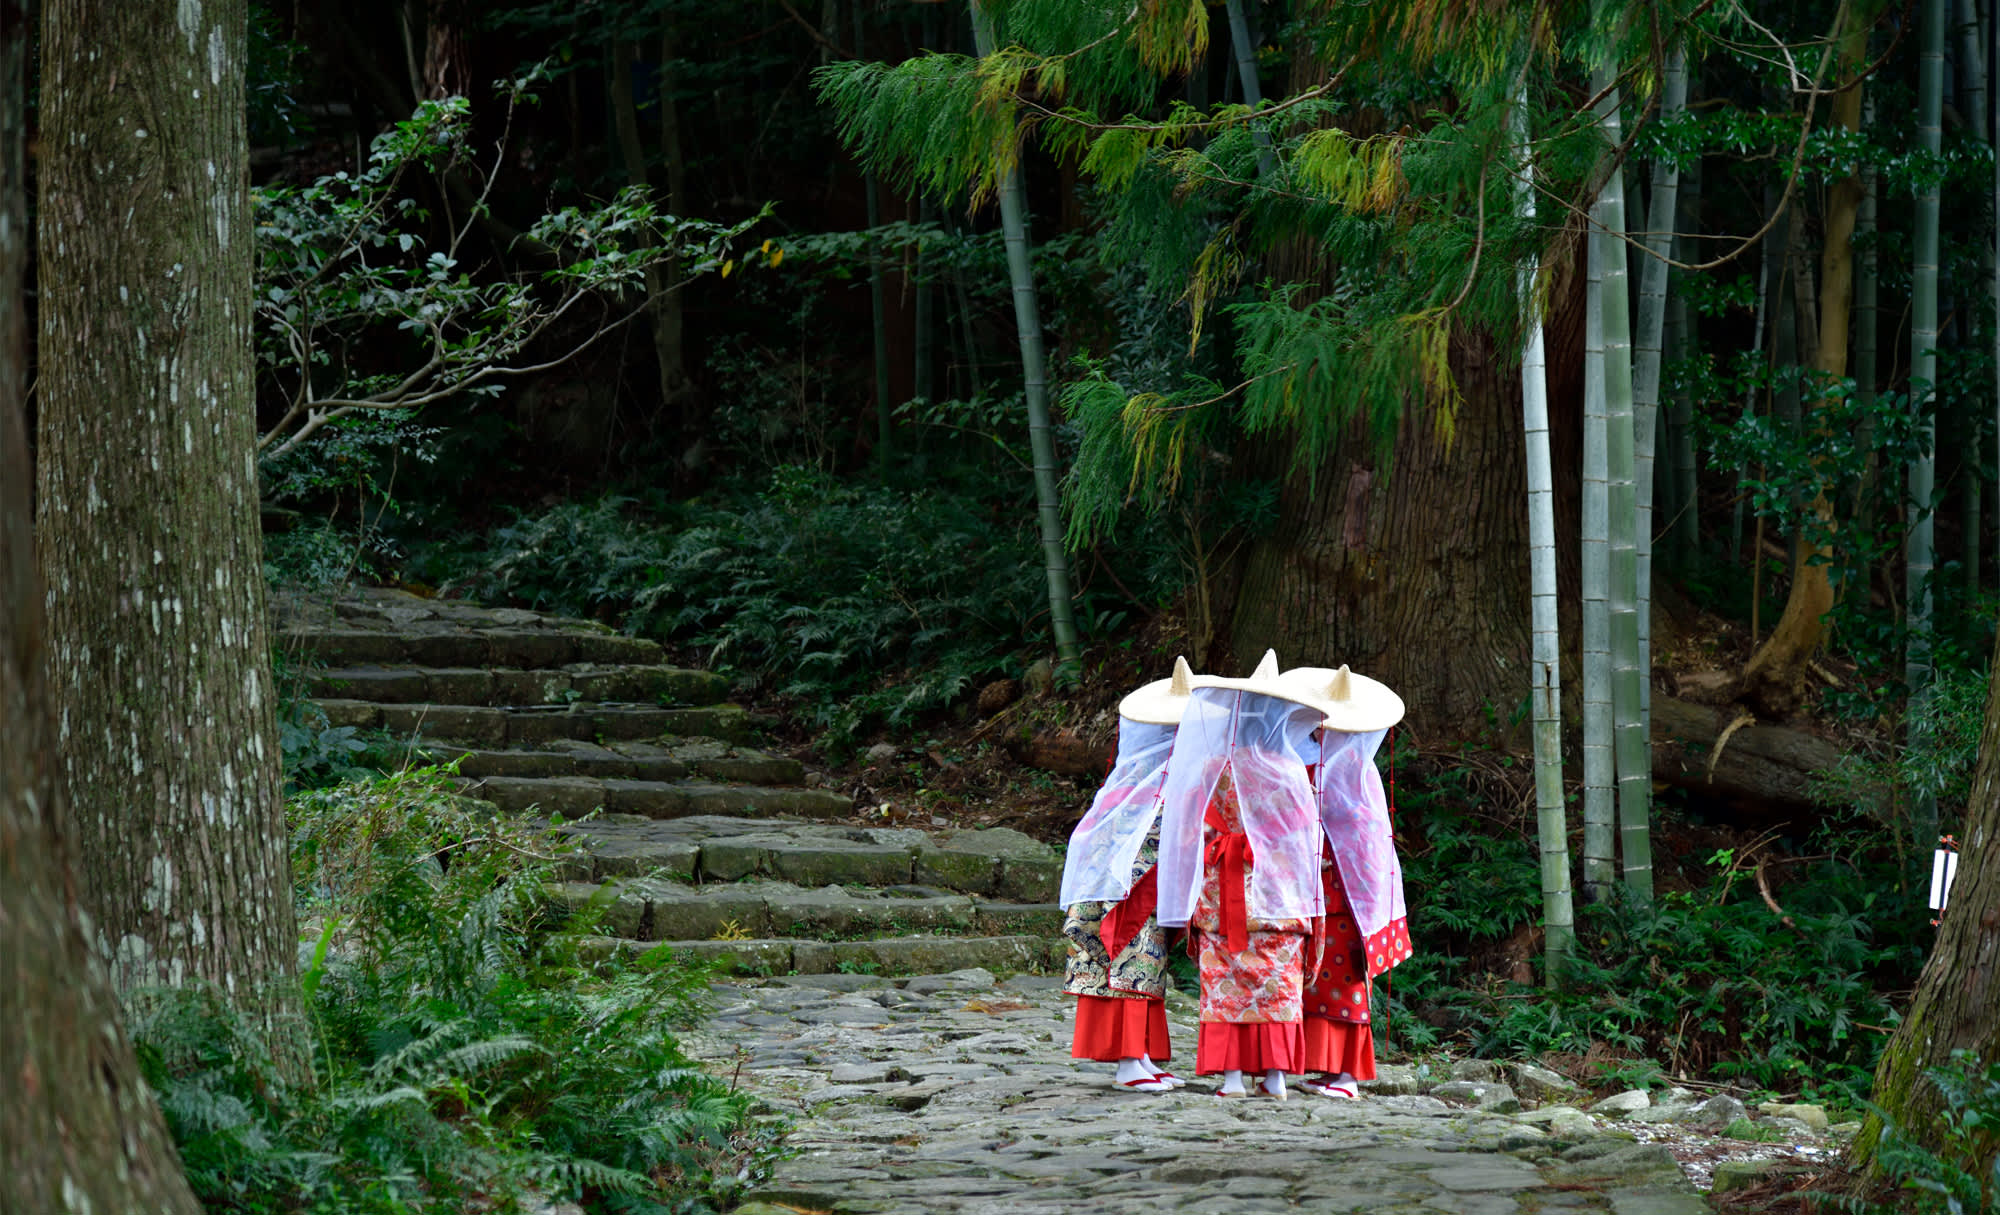 The Kumano Kodo Pilgrimage Routes